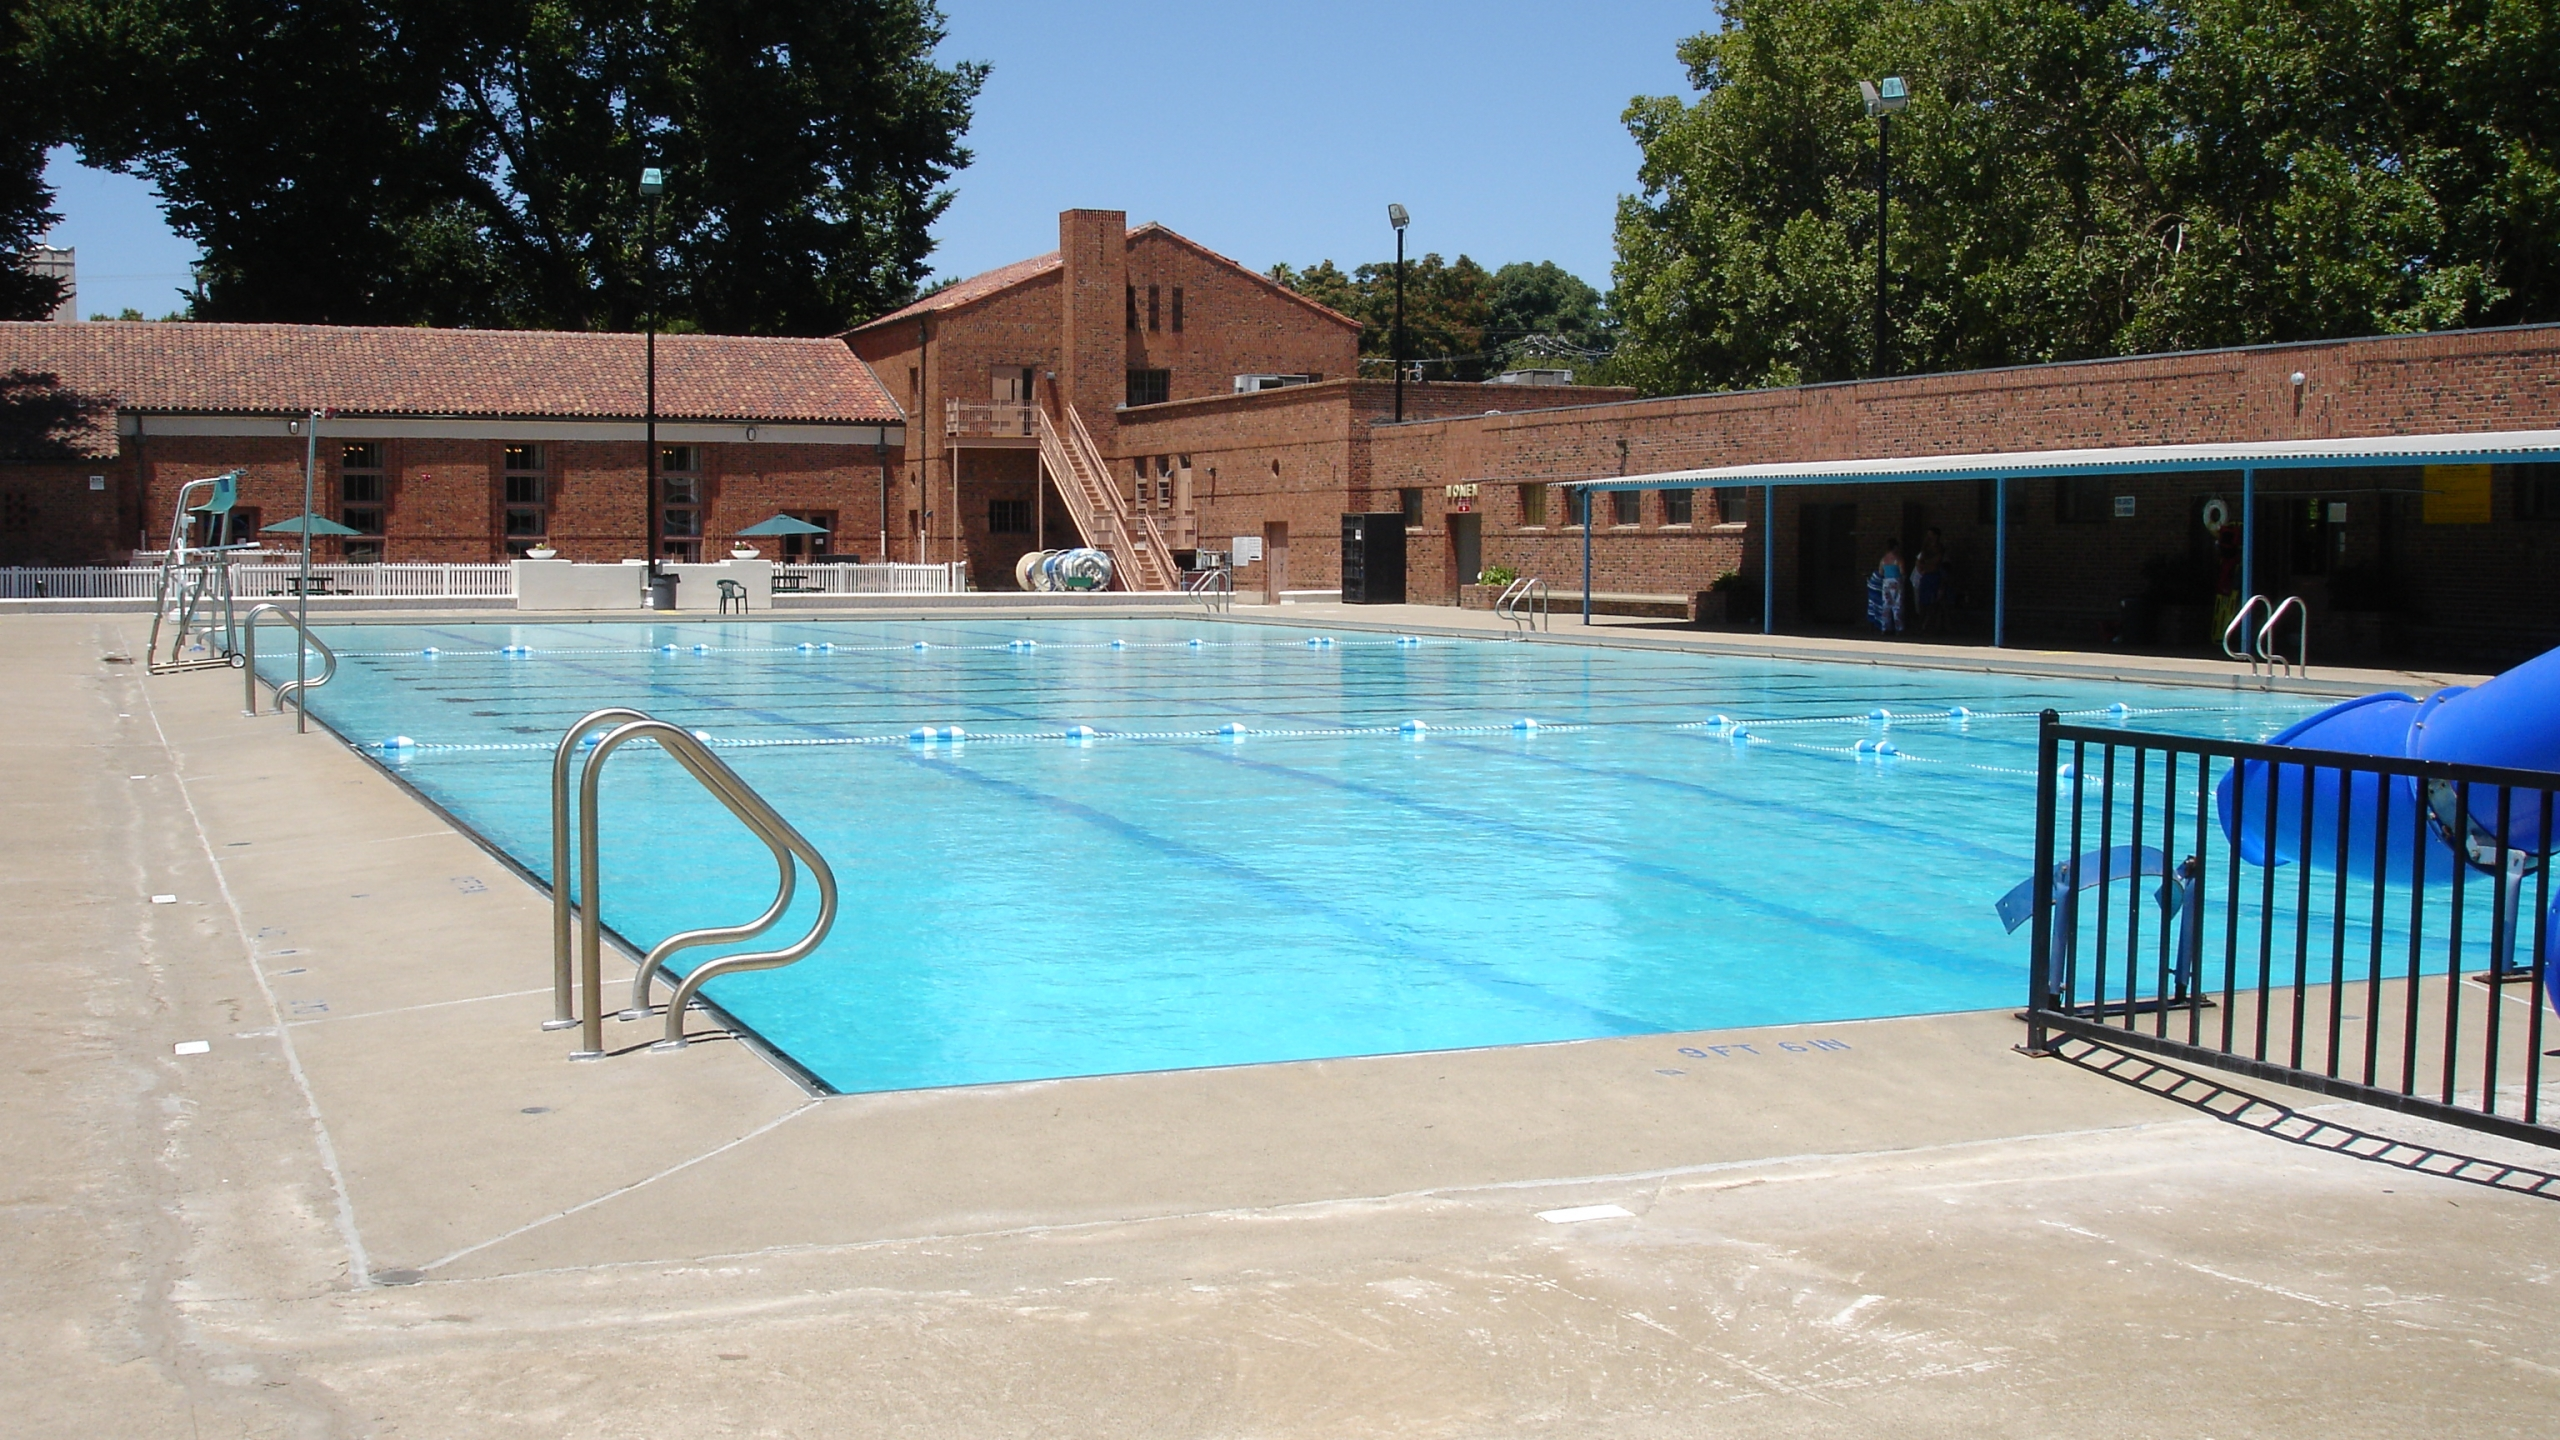 A municipal swimming pool is seen in a file photo. (Credit: Getty Images)